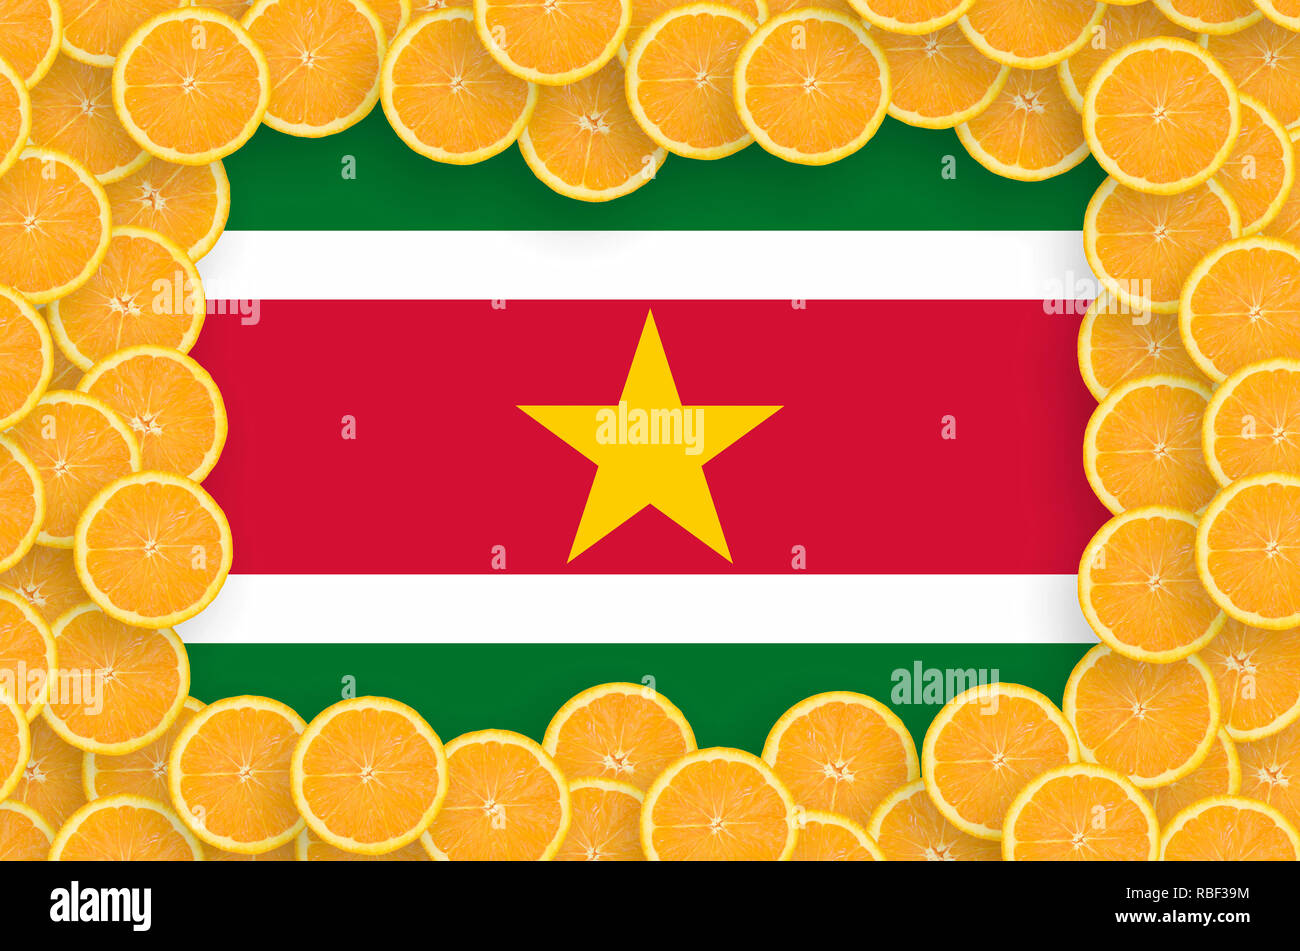 Suriname flag  in frame of orange citrus fruit slices. Concept of growing as well as import and export of citrus fruits - Stock Image